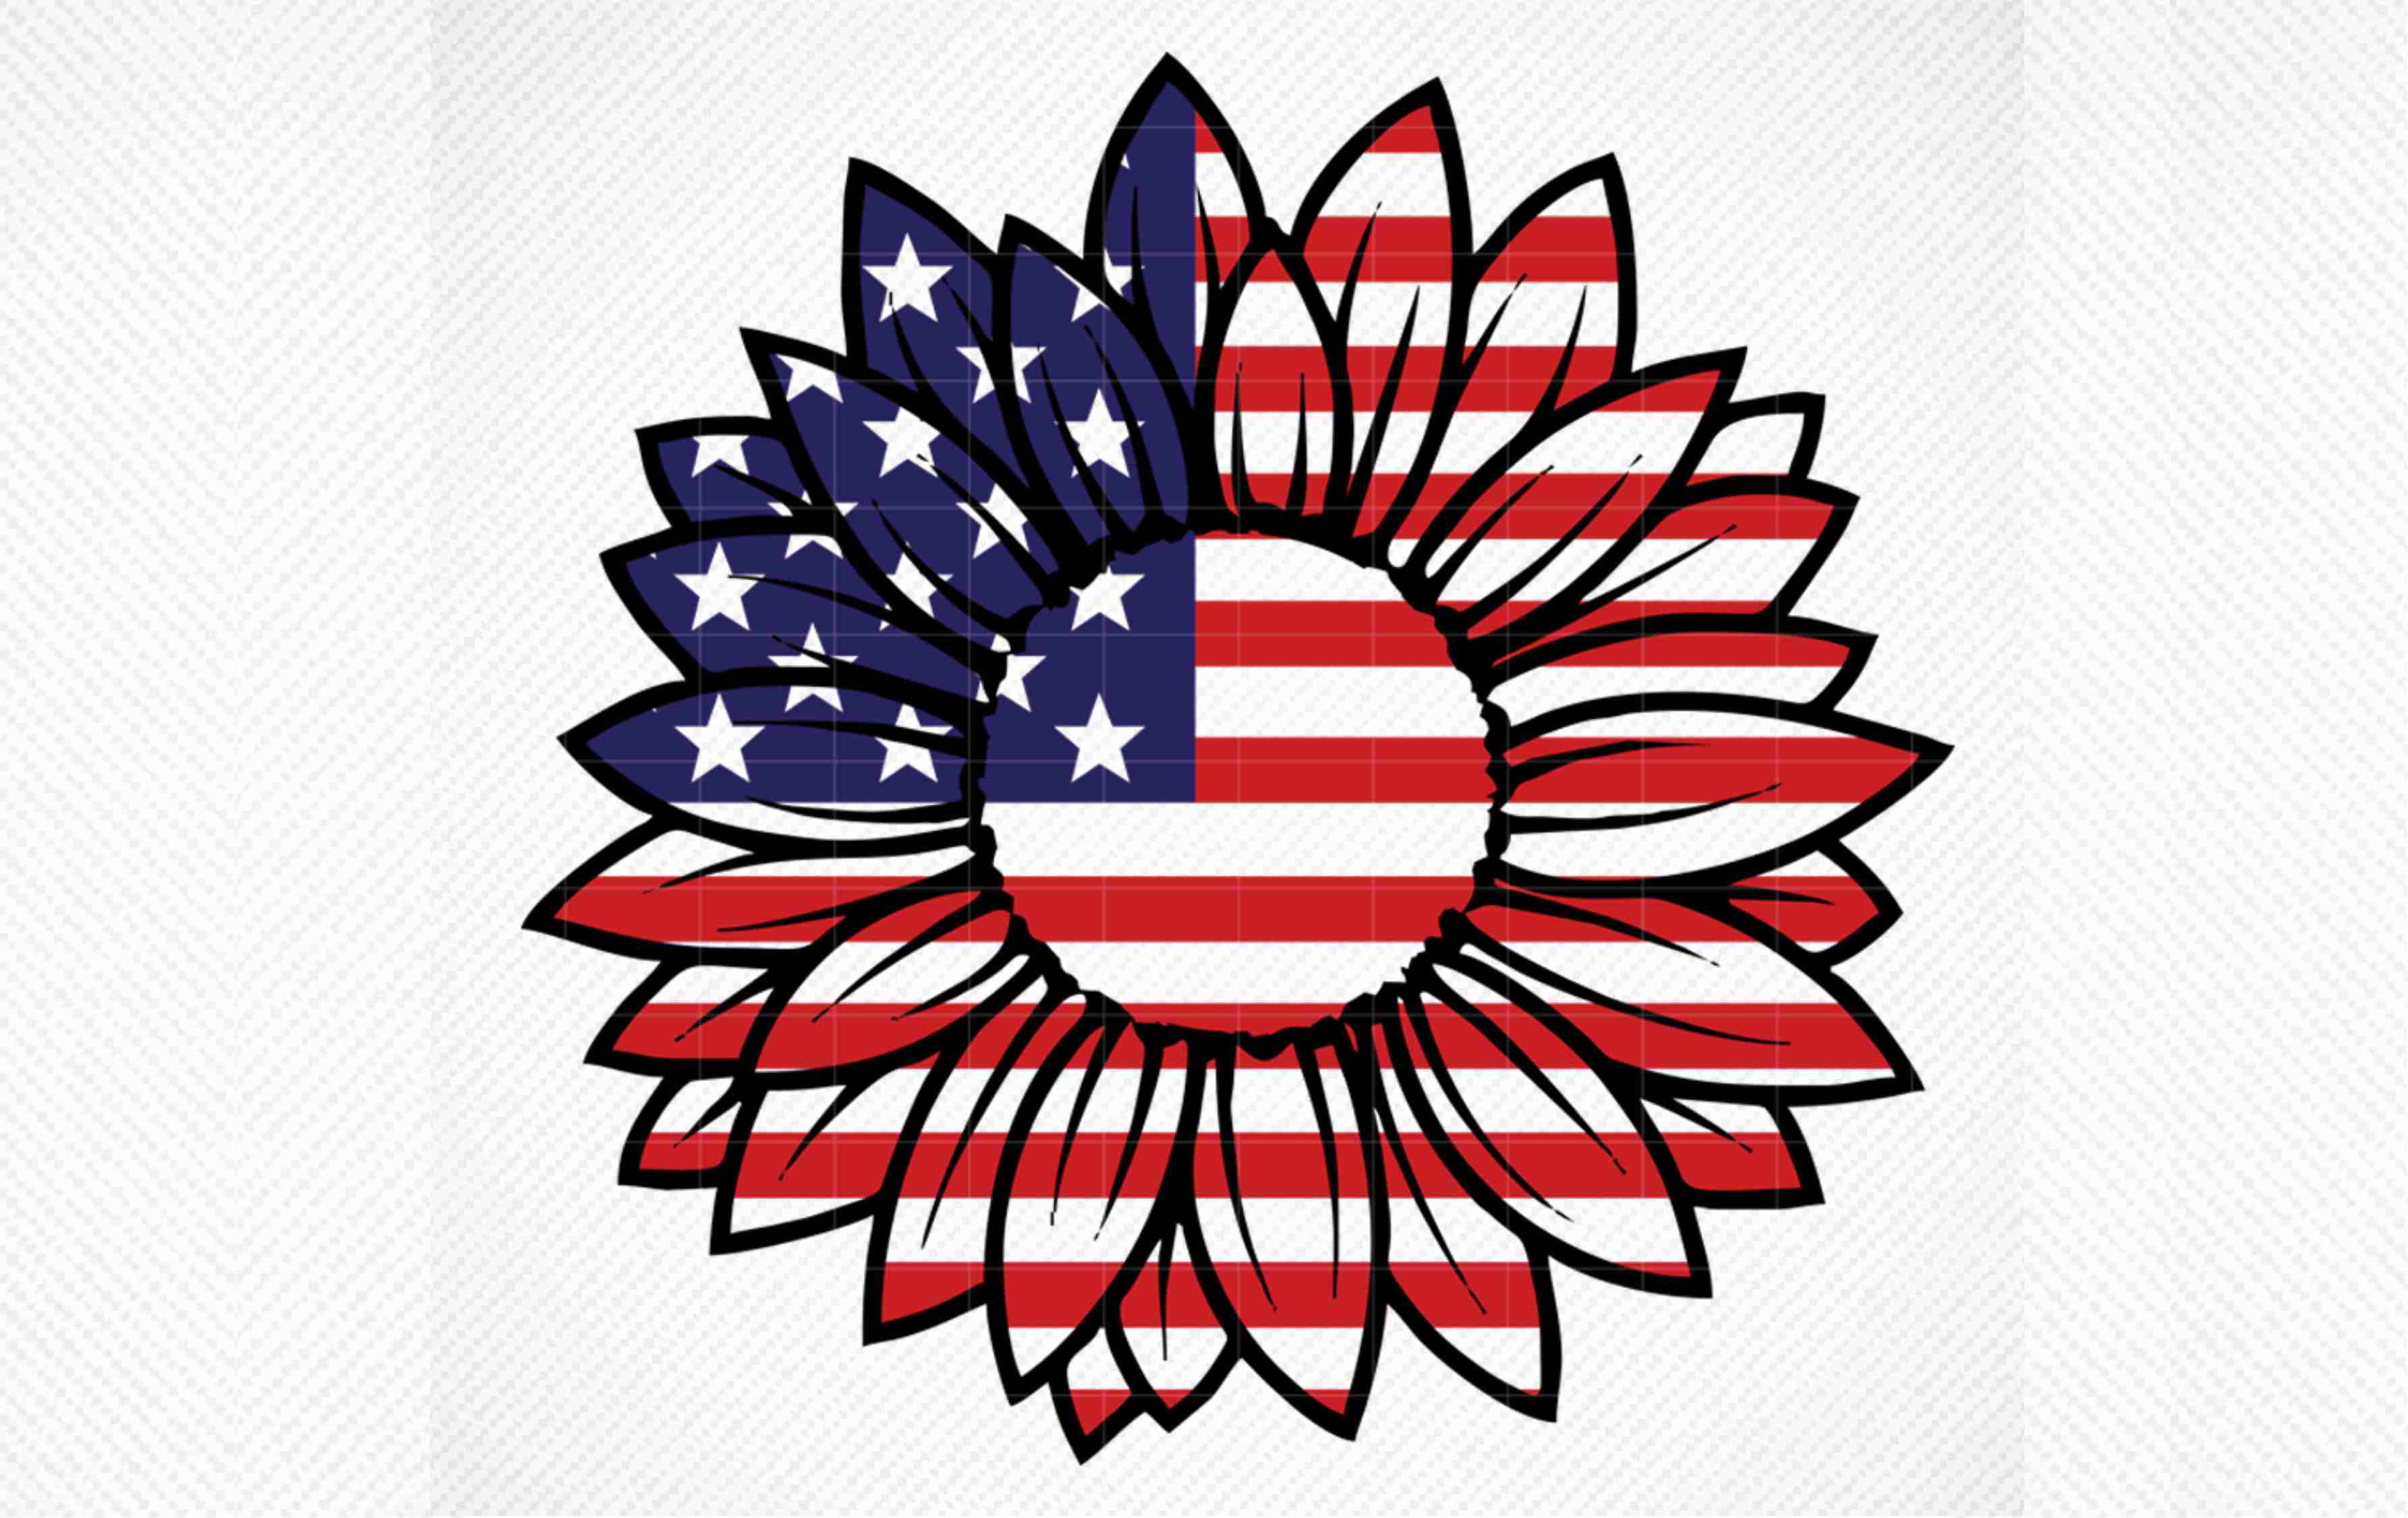 Download Free Patriotic Sunflower 4th Of July Graphic By Svg Den Creative for Cricut Explore, Silhouette and other cutting machines.